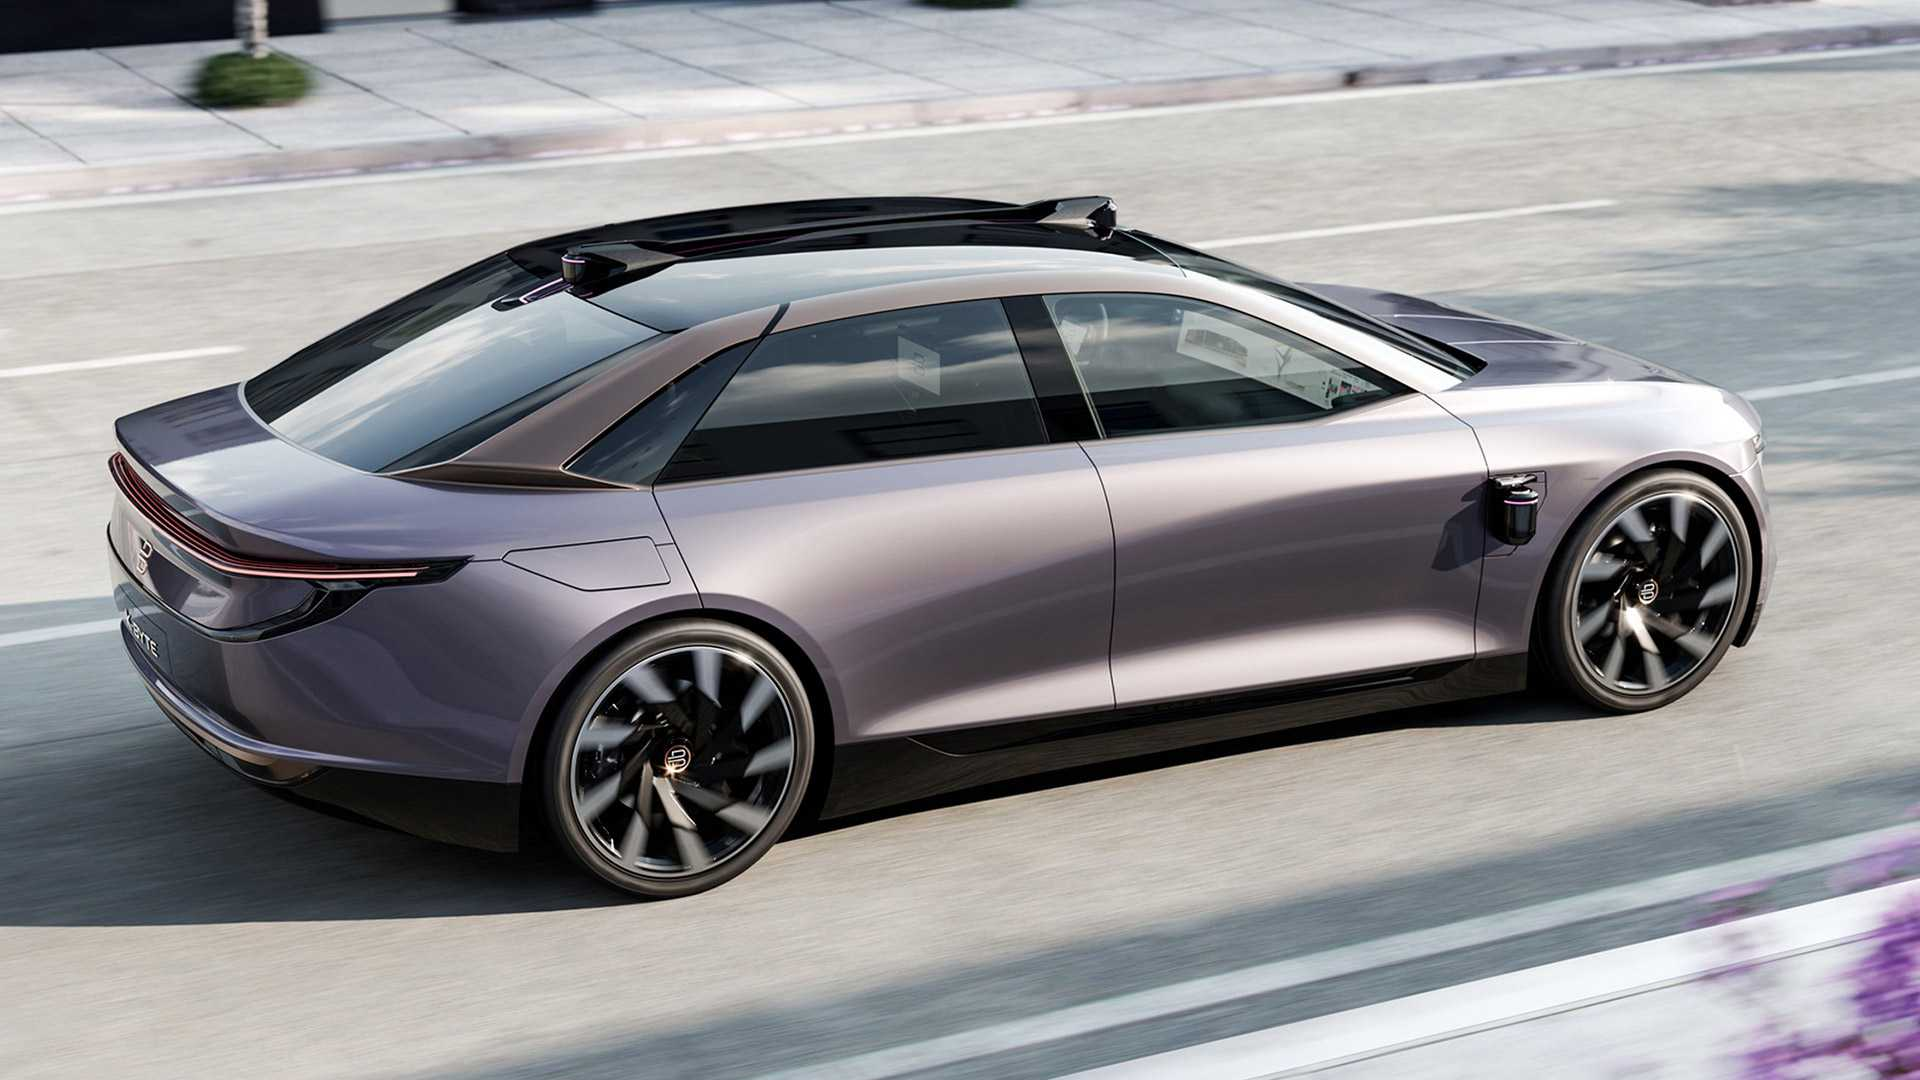 Best Ev Cars 2021 2021 Electric Vehicles: The Future Generation of EVs